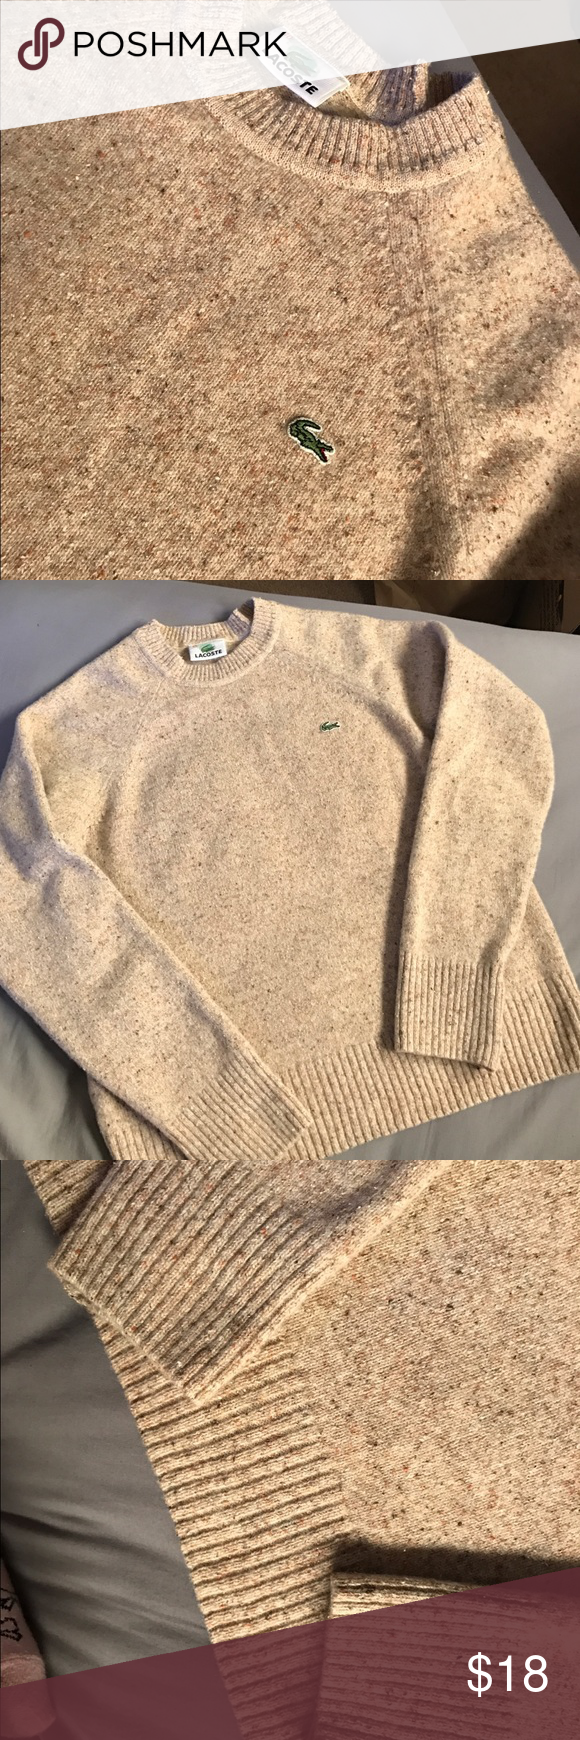 Vintage Lacoste  men's sweater  It is very small. It for me a women's small. Very good condition. Lacoste Sweaters Crew & Scoop Necks